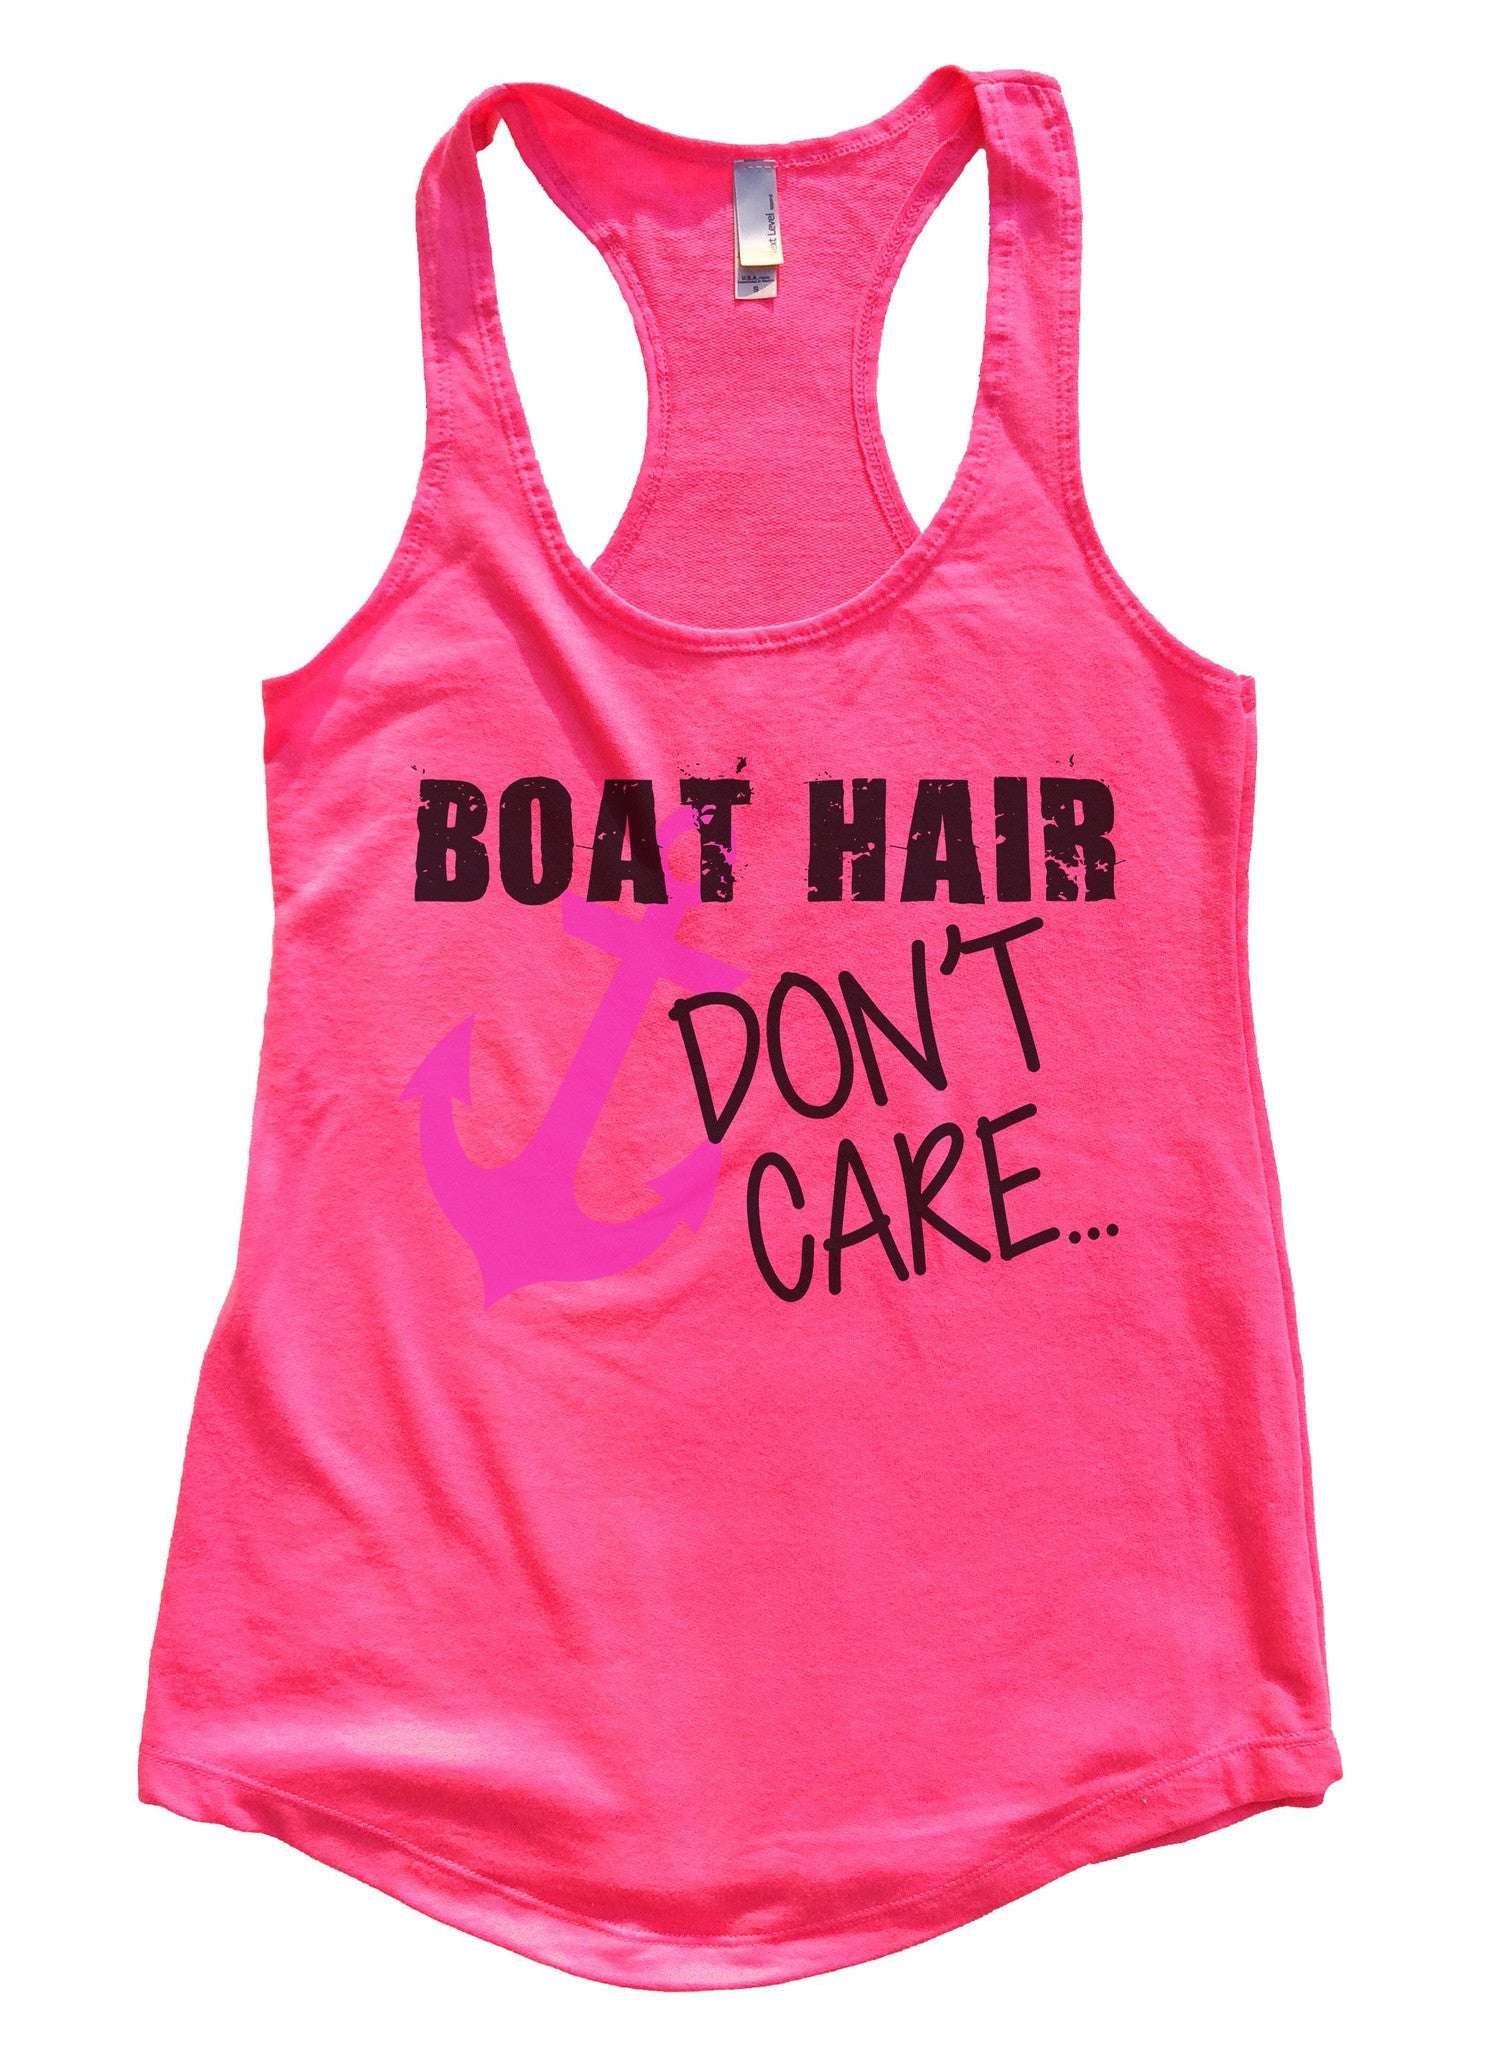 Boat Hair Don't Care Womens Workout Tank Top F691 - Funny Shirts Tank Tops Burnouts and Triblends  - 4